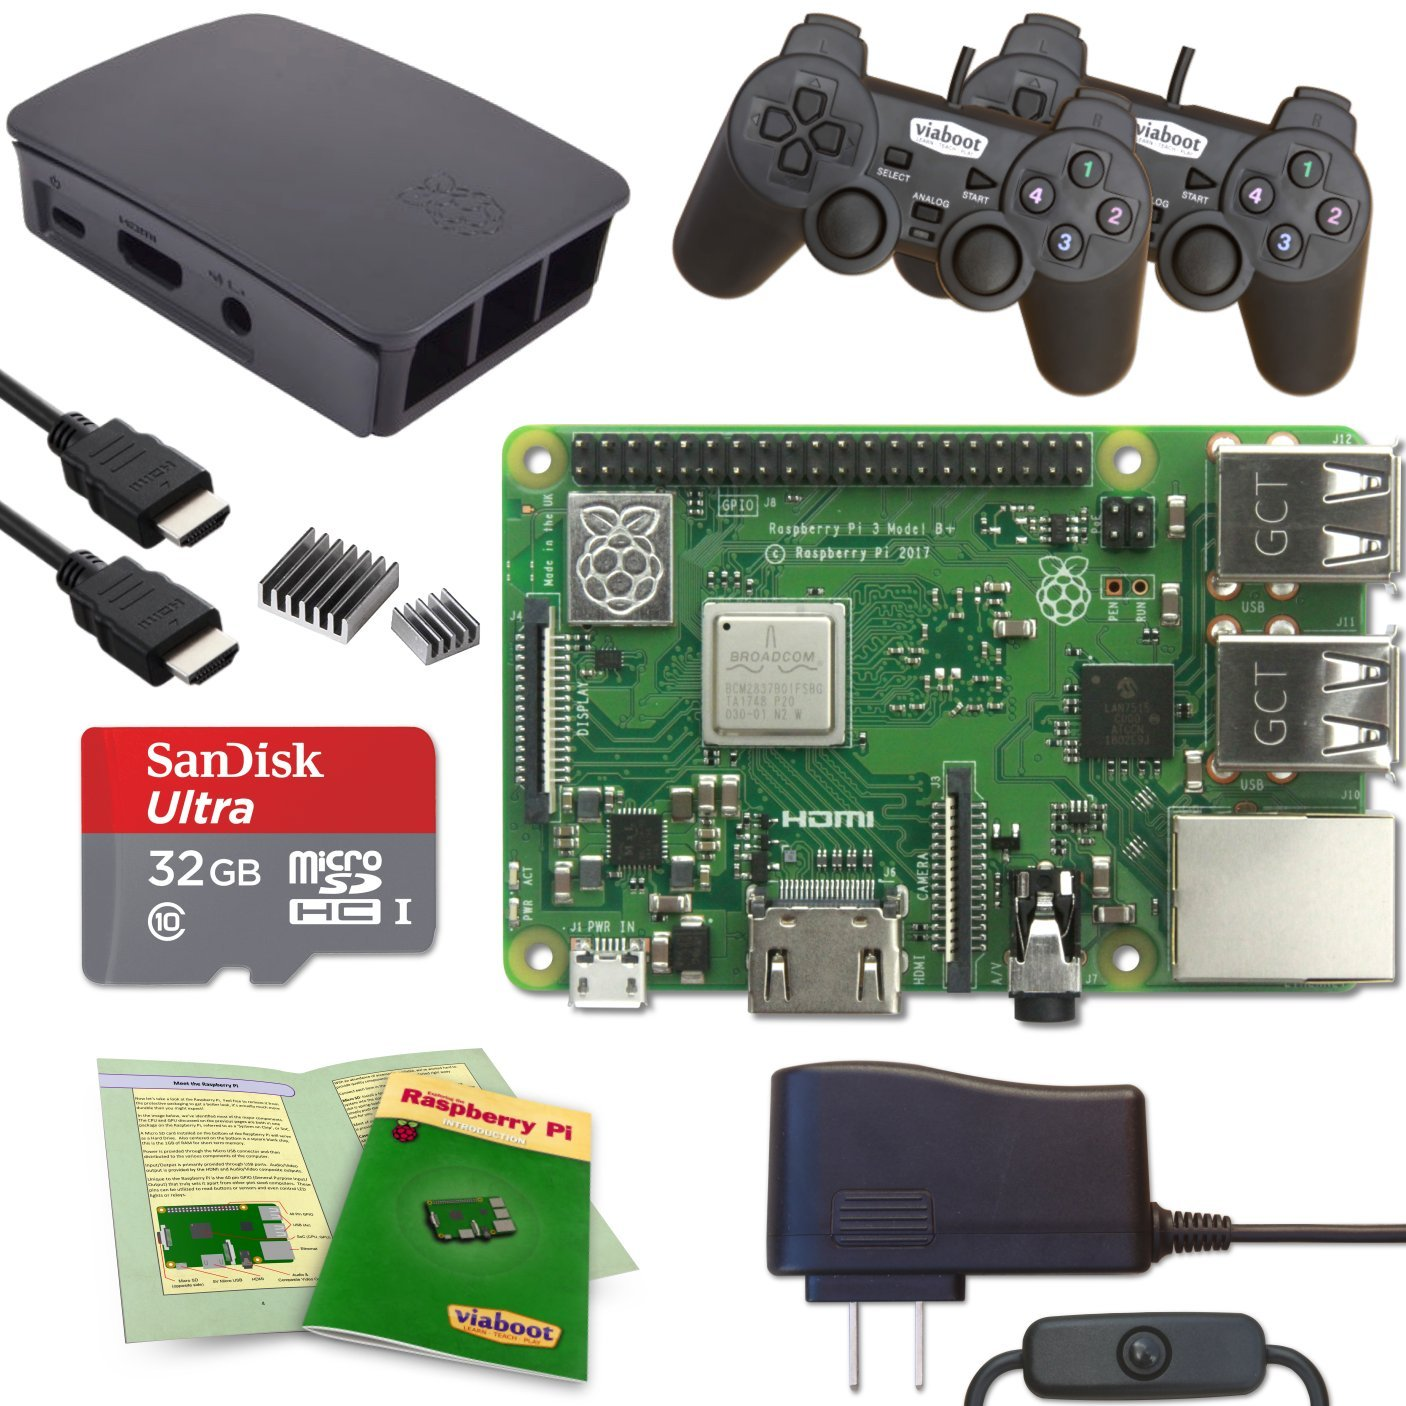 Viaboot Raspberry Pi 3 B+ Gaming Kit — Official 32GB MicroSD Card, Official Rasbperry Pi Foundation Black/Gray Case, PS Edition by Viaboot (Image #1)